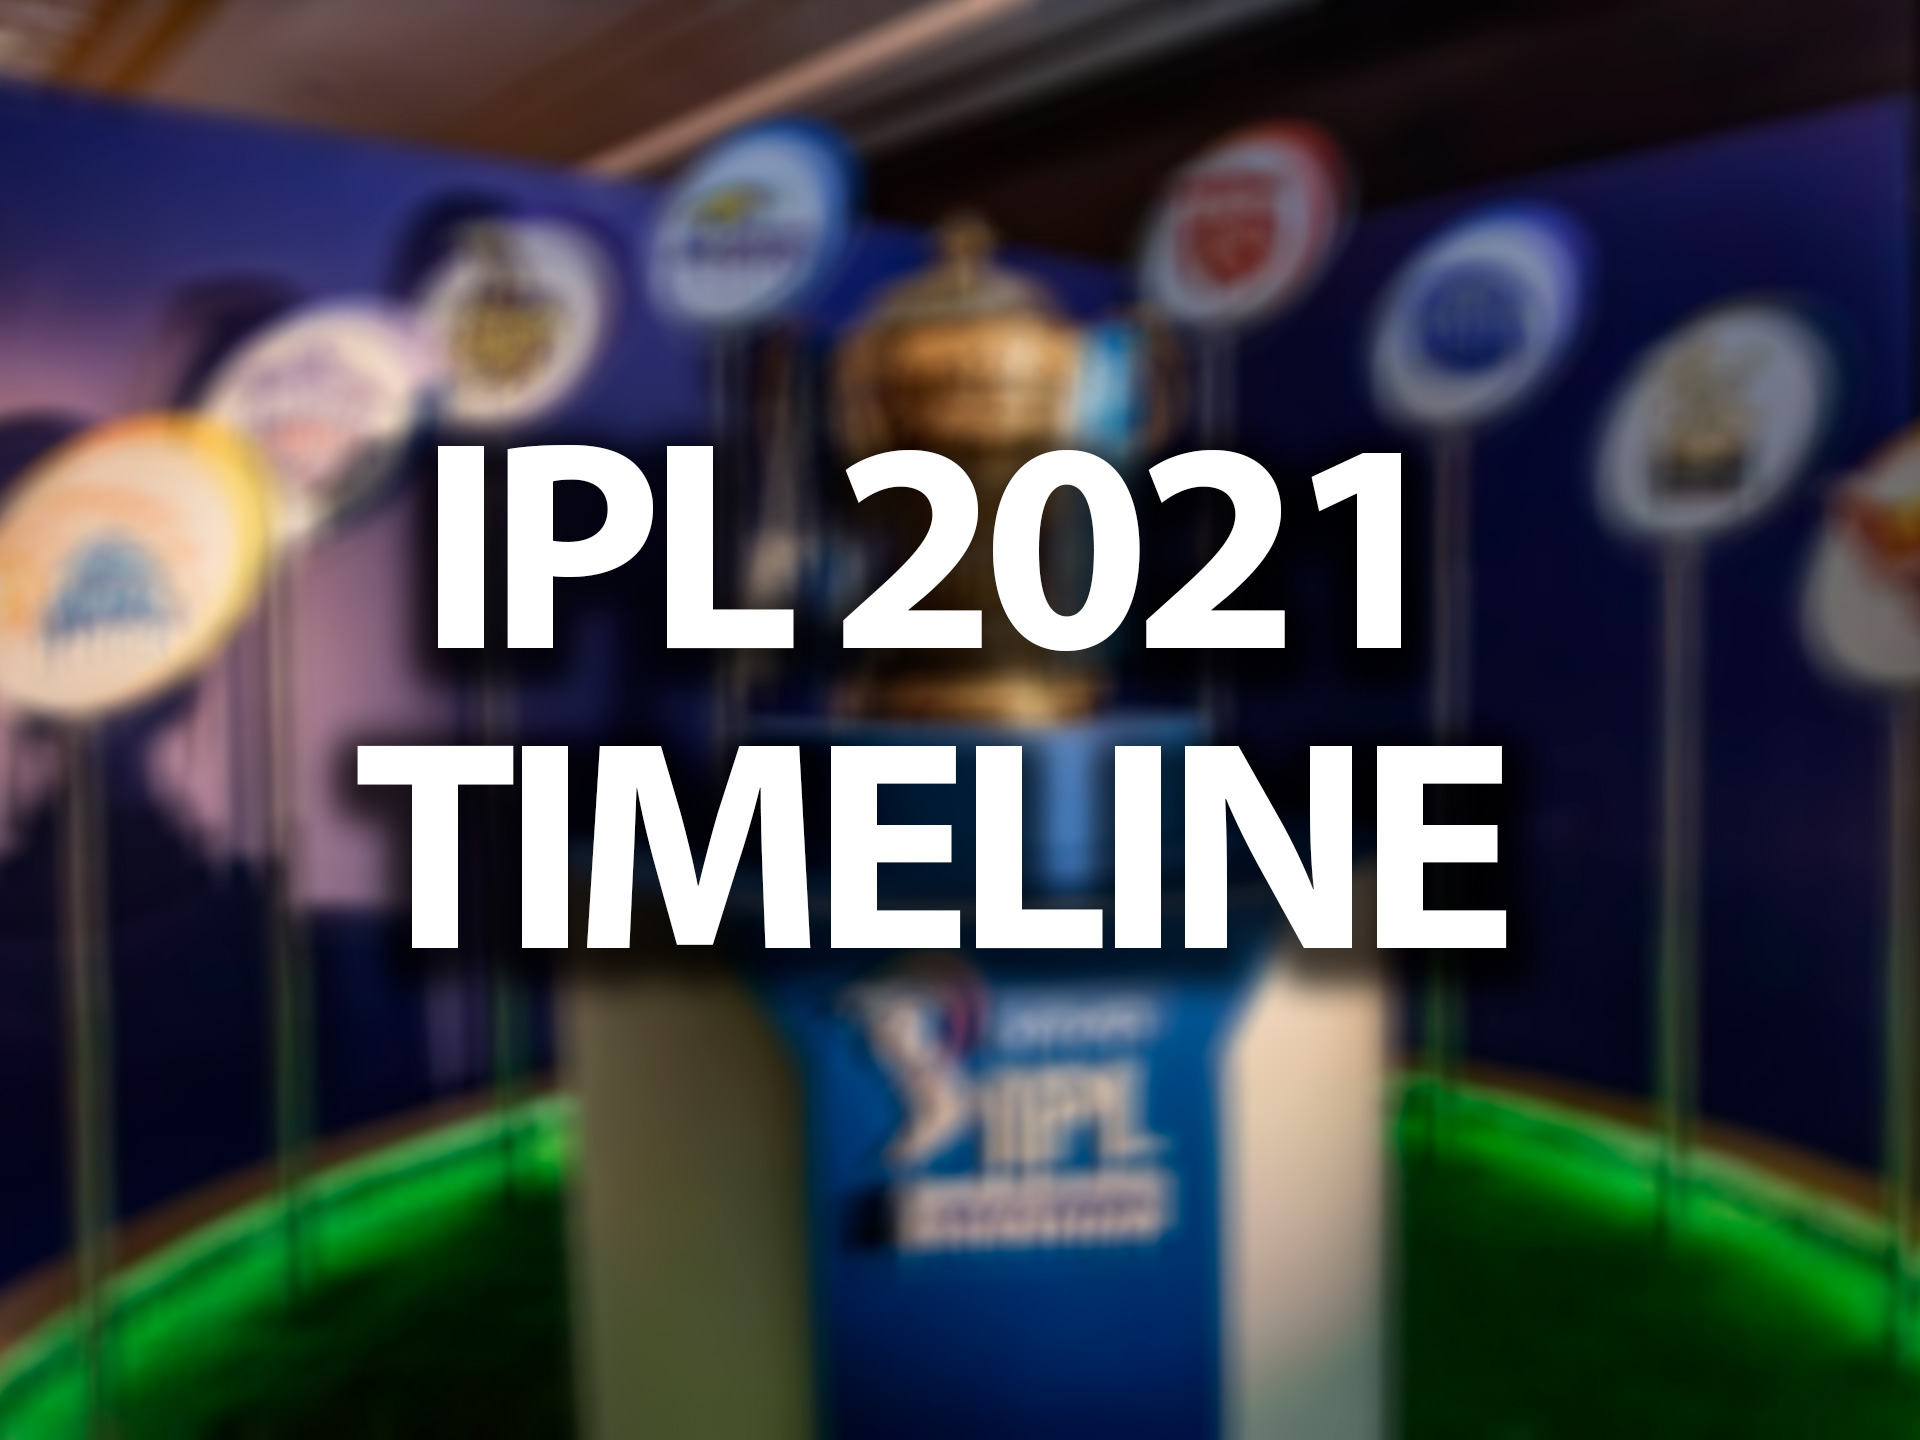 Follow the IPL schedule to bet on your fvorite cricket teams.